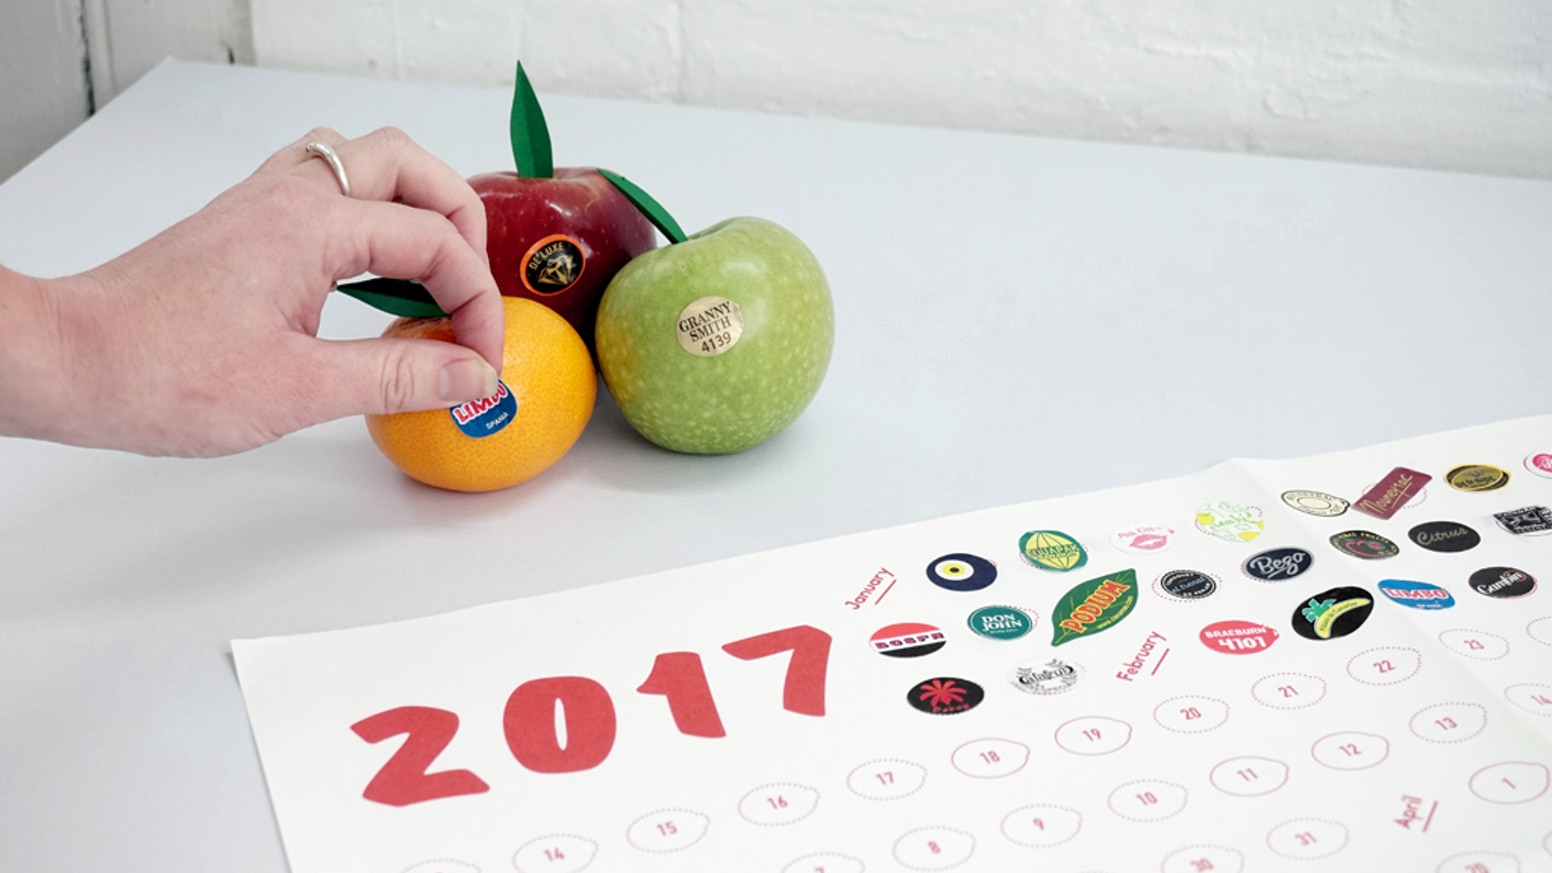 Buy your 2017 fruit sticker year planners at www.fruitstickers.xyz